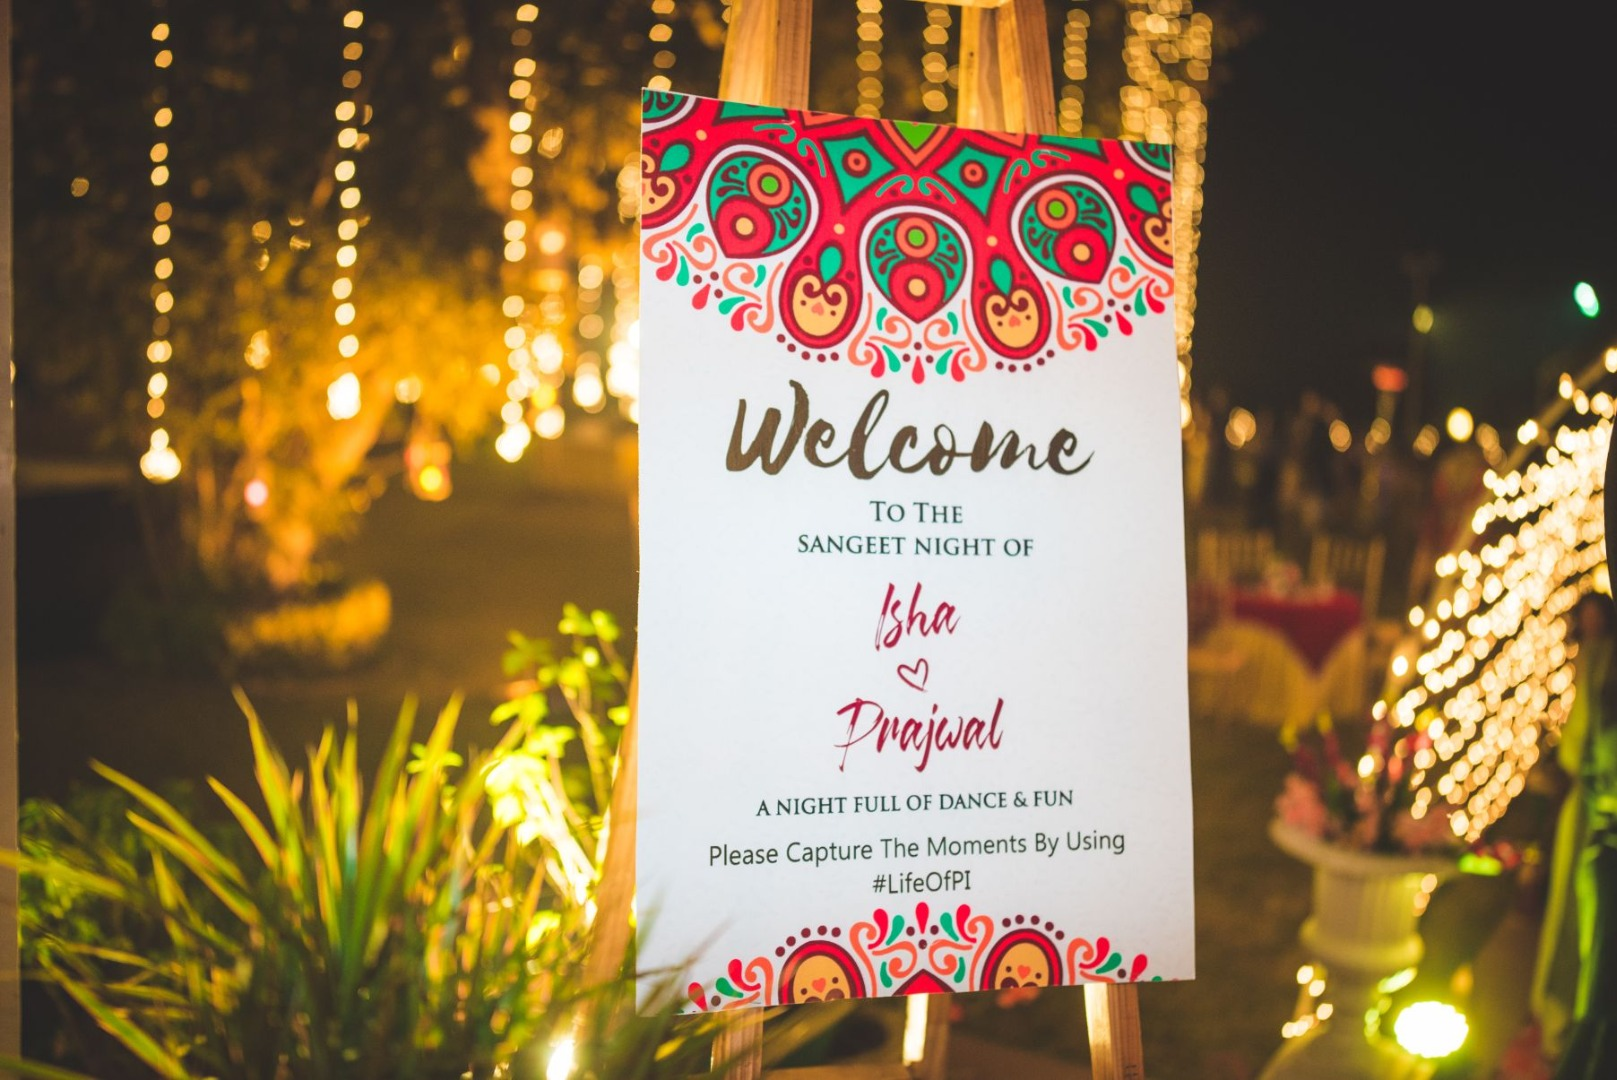 Sangeet Night Welcome Signage and Fairy Light Decor